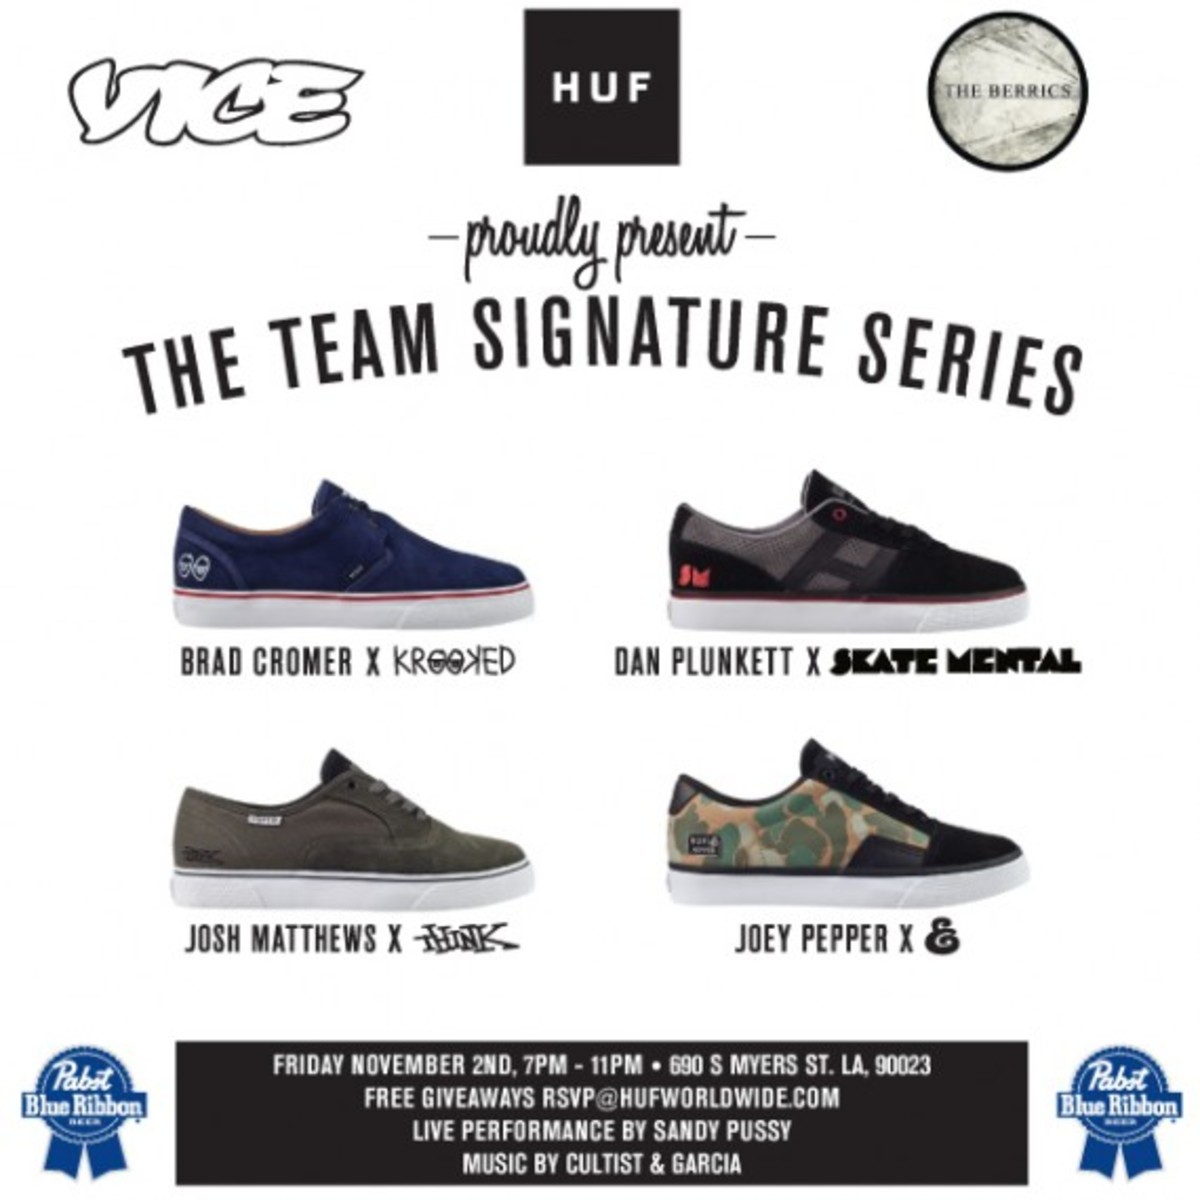 huf-team-signature-series-release-party-01